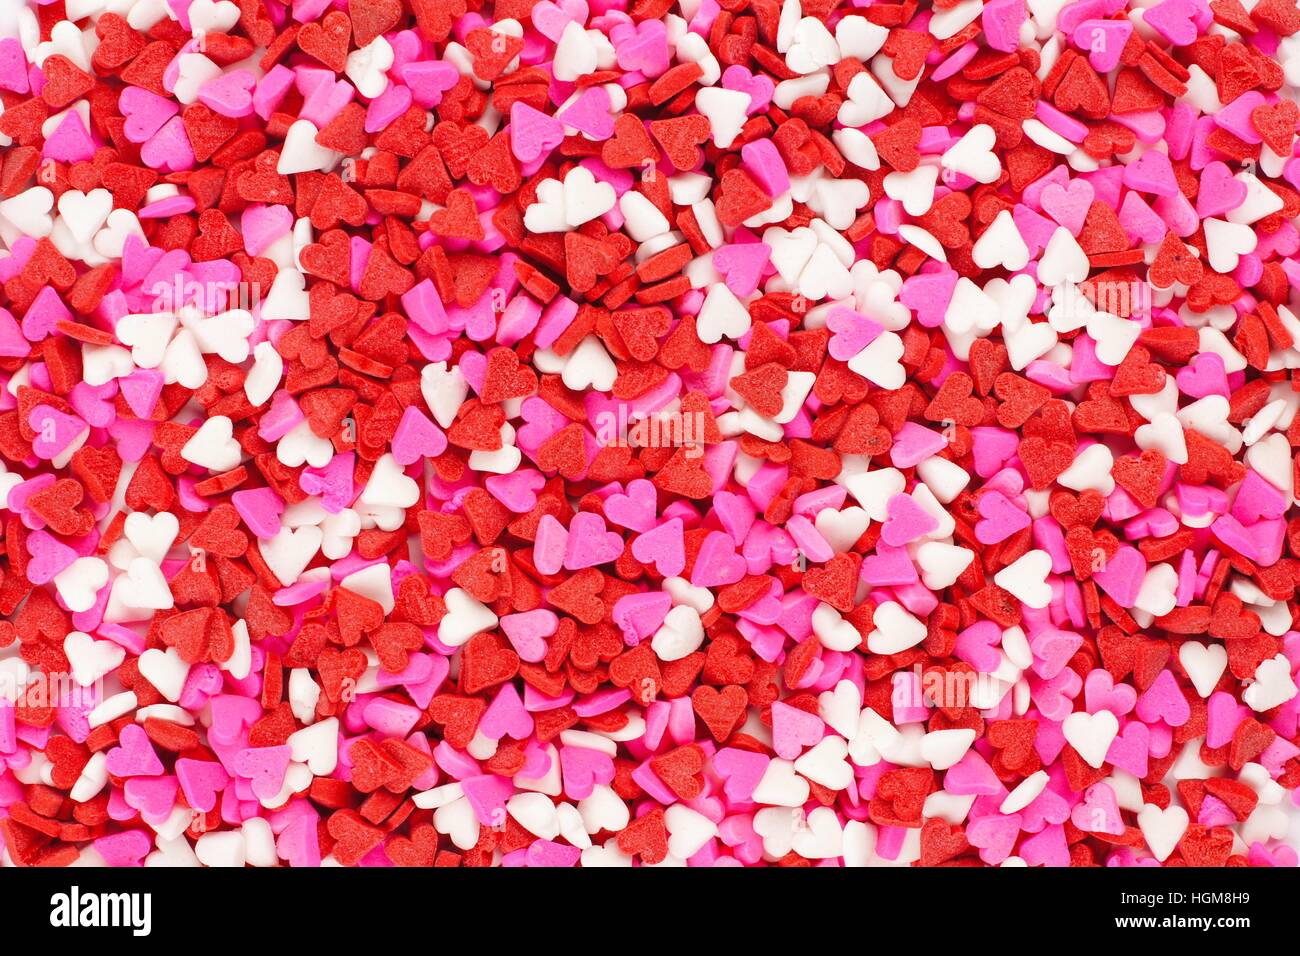 Valentines Day candy heart sprinkles background - Stock Image